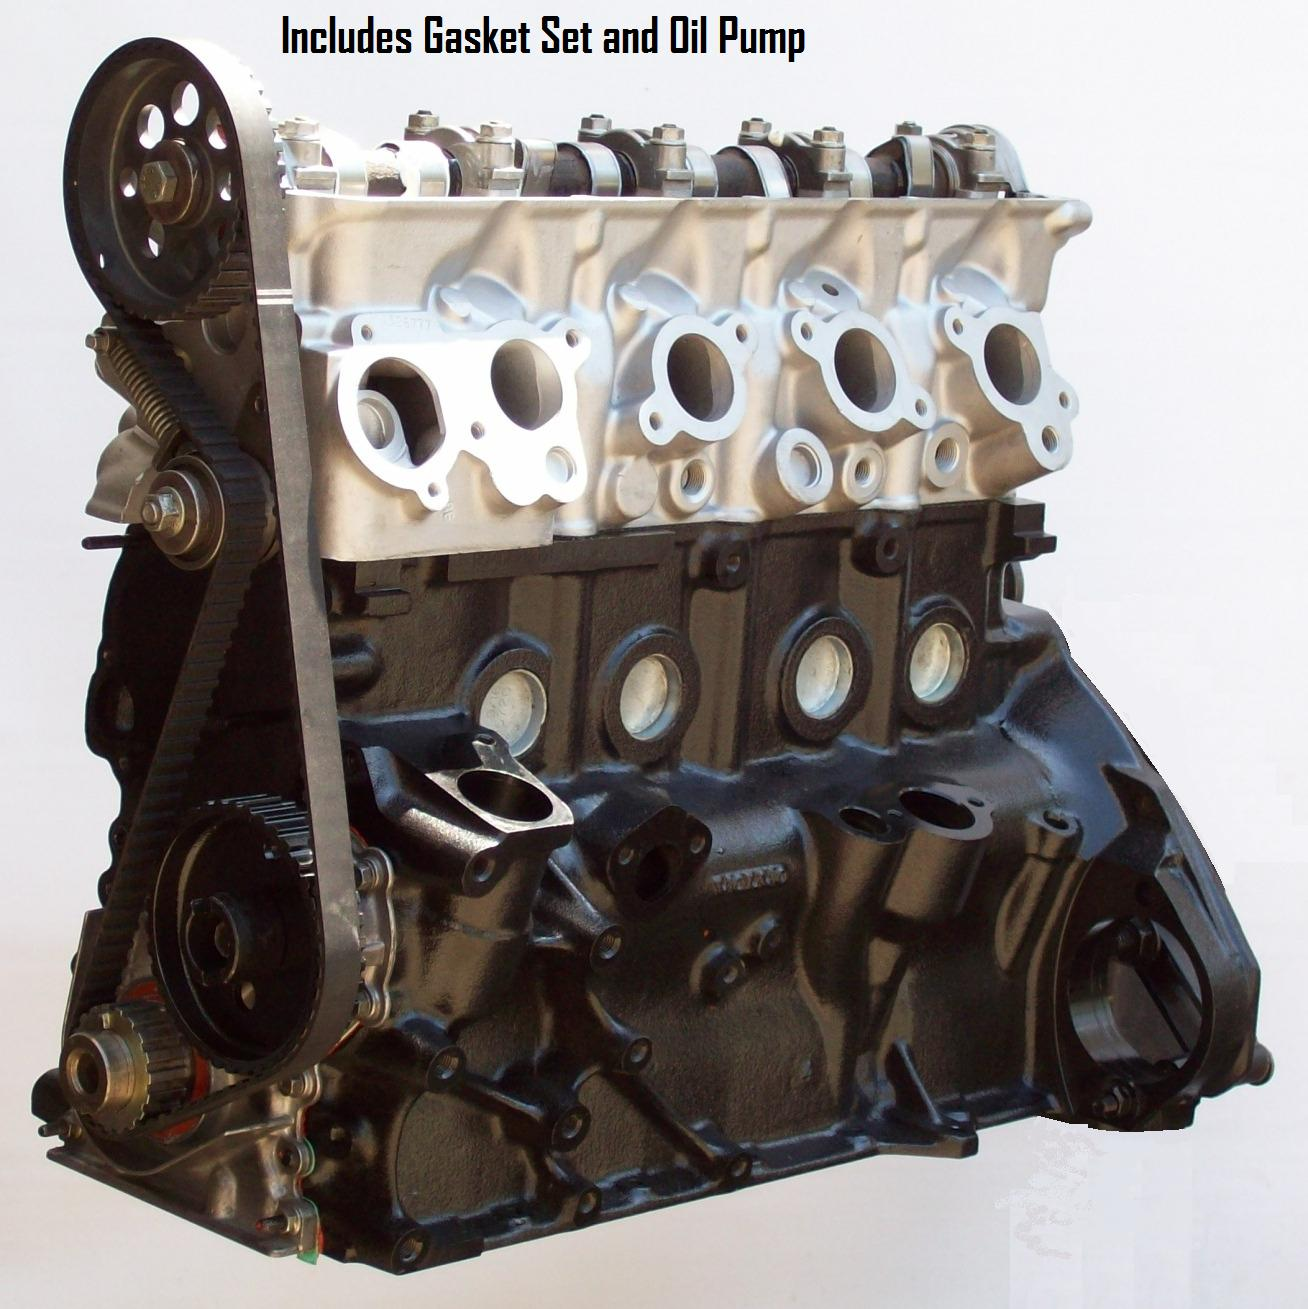 Marine Remanufactured Engines Inboard Buick V6 Engine Block Casting Numbers Aq120b 110hp Aq125a 117hp Aq140a 125hp80mm Stroke 8v 1000160 Head A Cam B21 Sohc